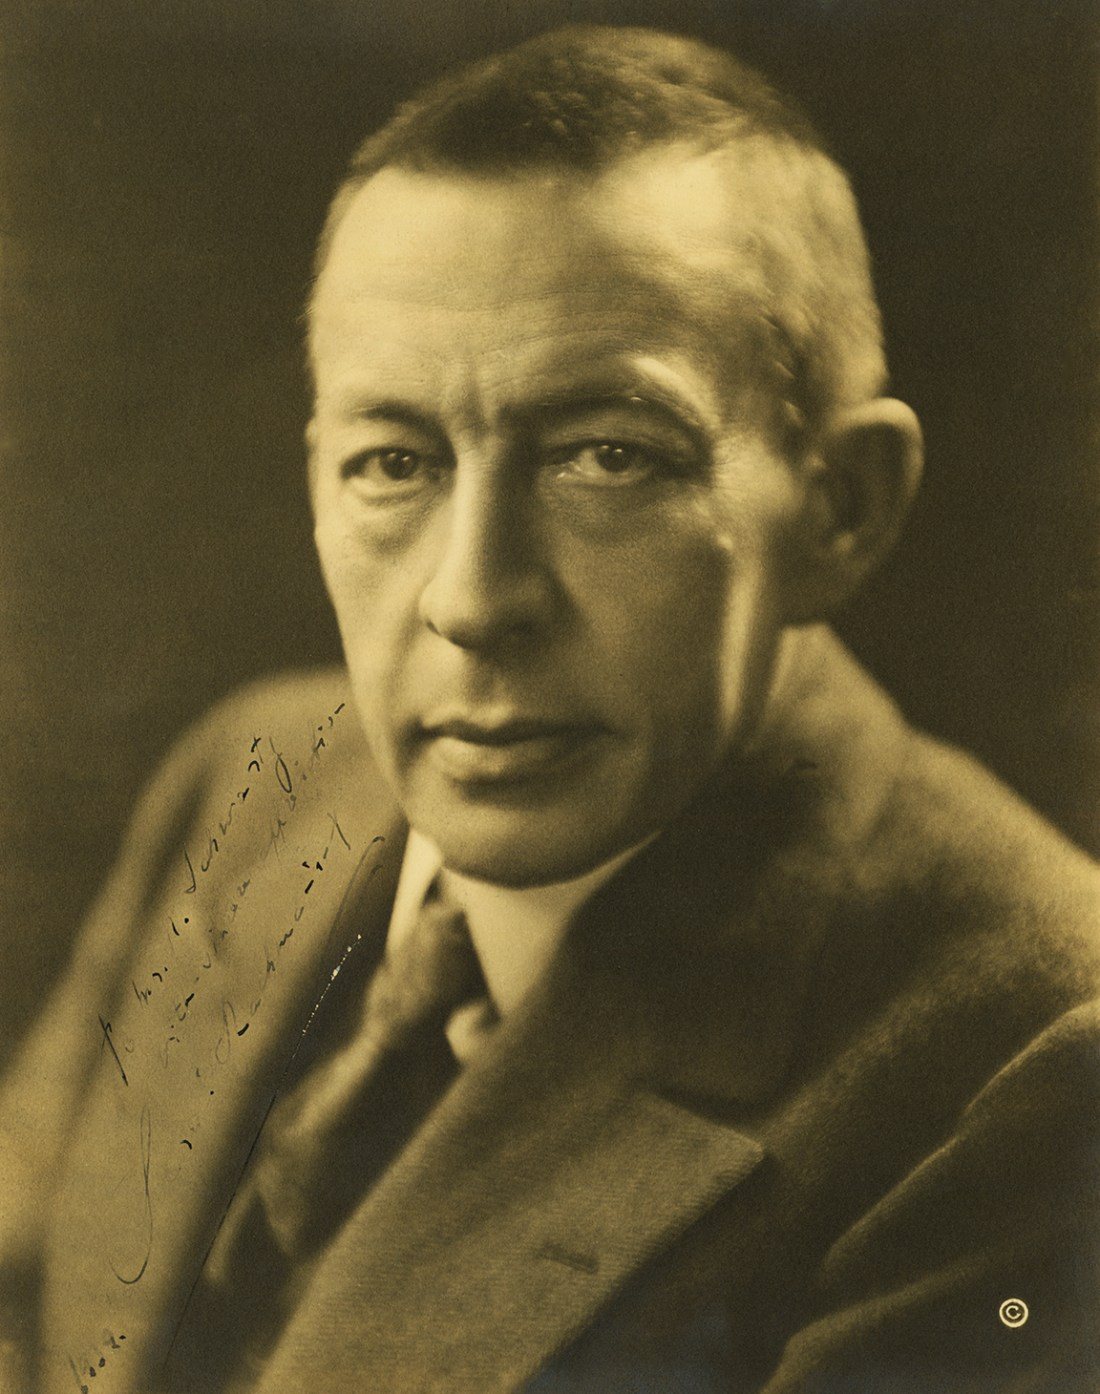 Sergei Rachmaninoff with note to Norman Black